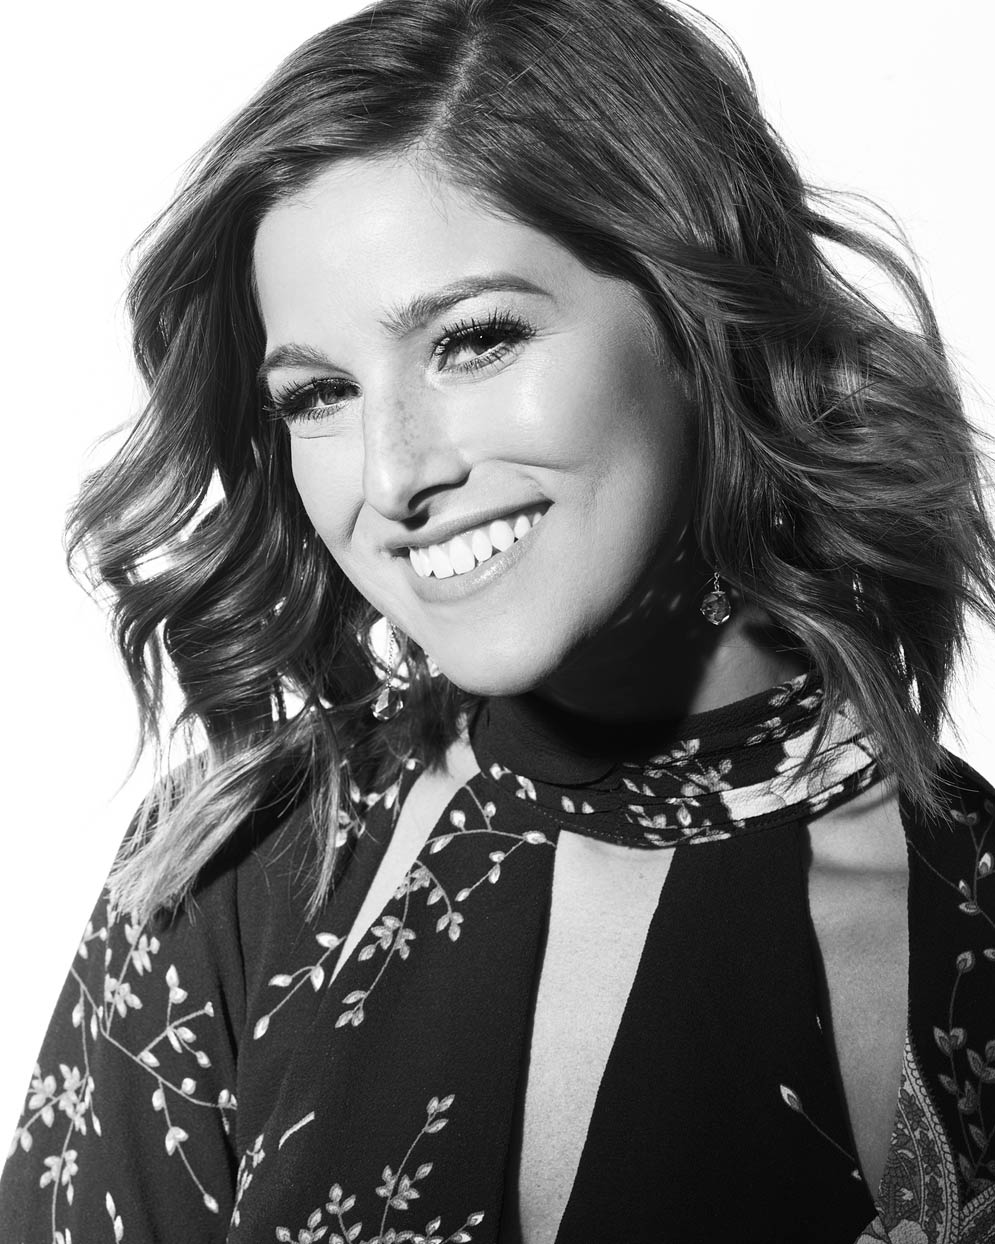 Mark DeLong - Celebrity Photographer - Black and white photo of an actress smiling.